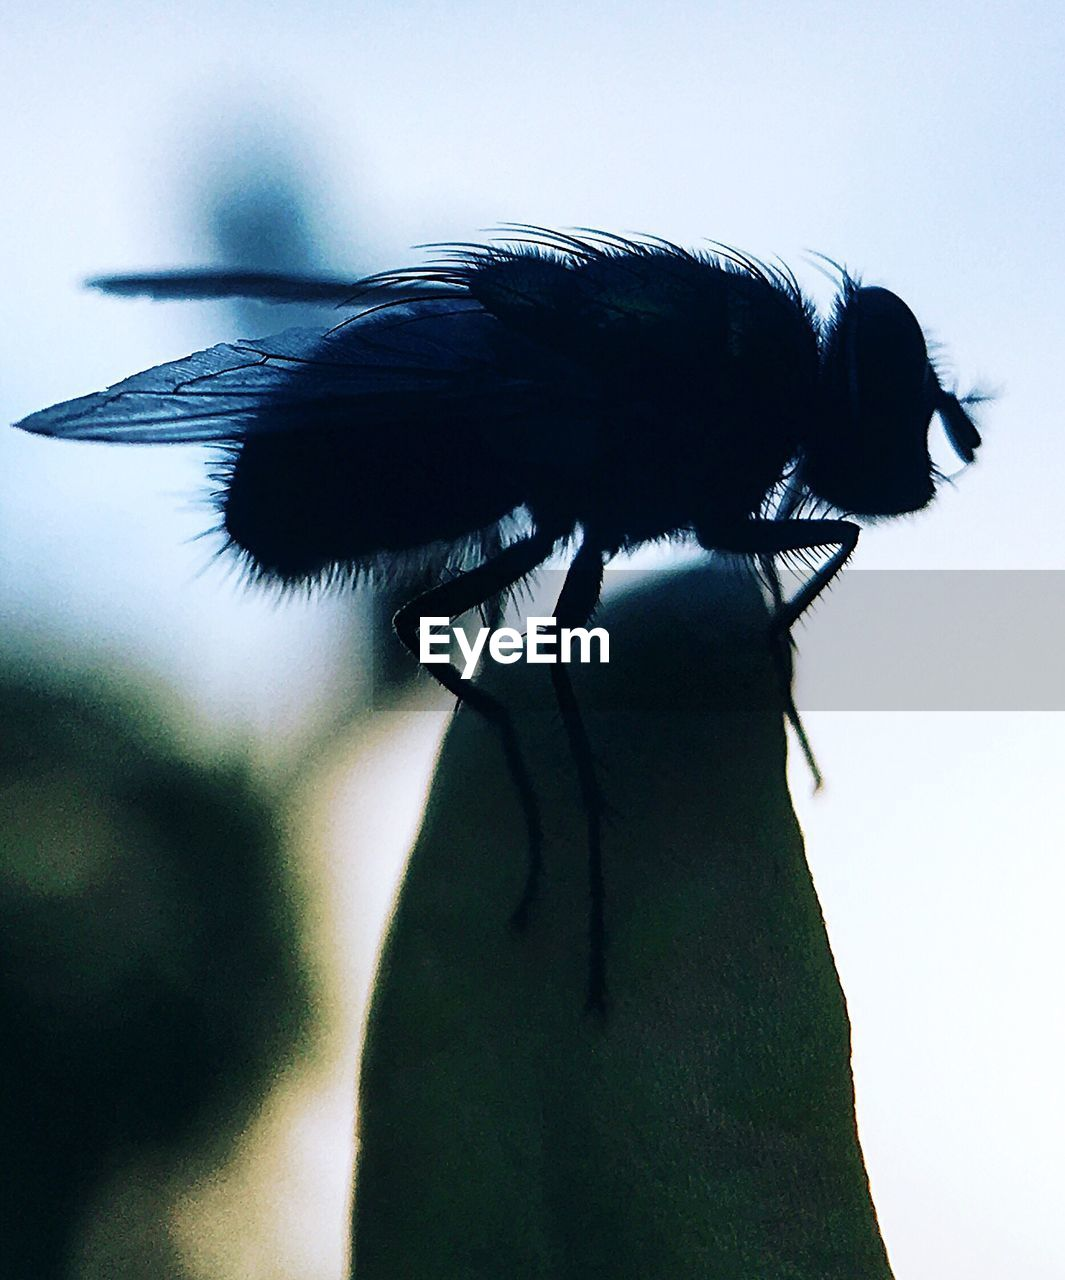 animal themes, insect, invertebrate, animal, one animal, animals in the wild, close-up, no people, nature, animal wildlife, focus on foreground, day, outdoors, sky, plant, black color, animal body part, animal wing, beauty in nature, growth